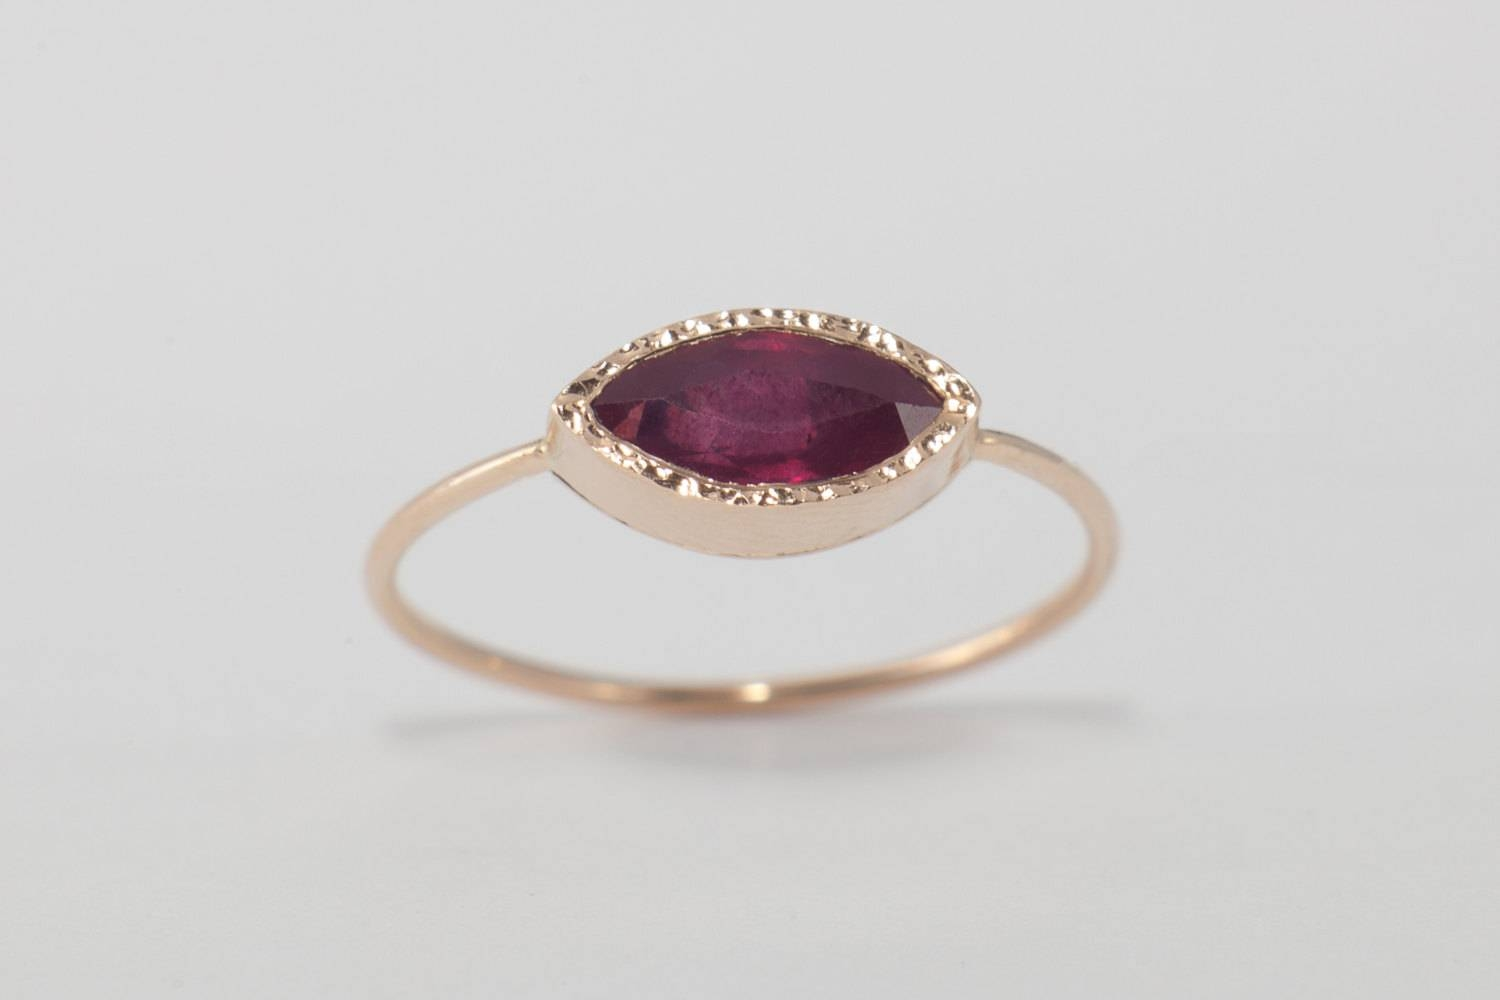 Ruby Ring , Ruby Engagement Ring, Simple Engagement, Natural Ruby Regarding Handcrafted Engagement Rings (View 14 of 15)